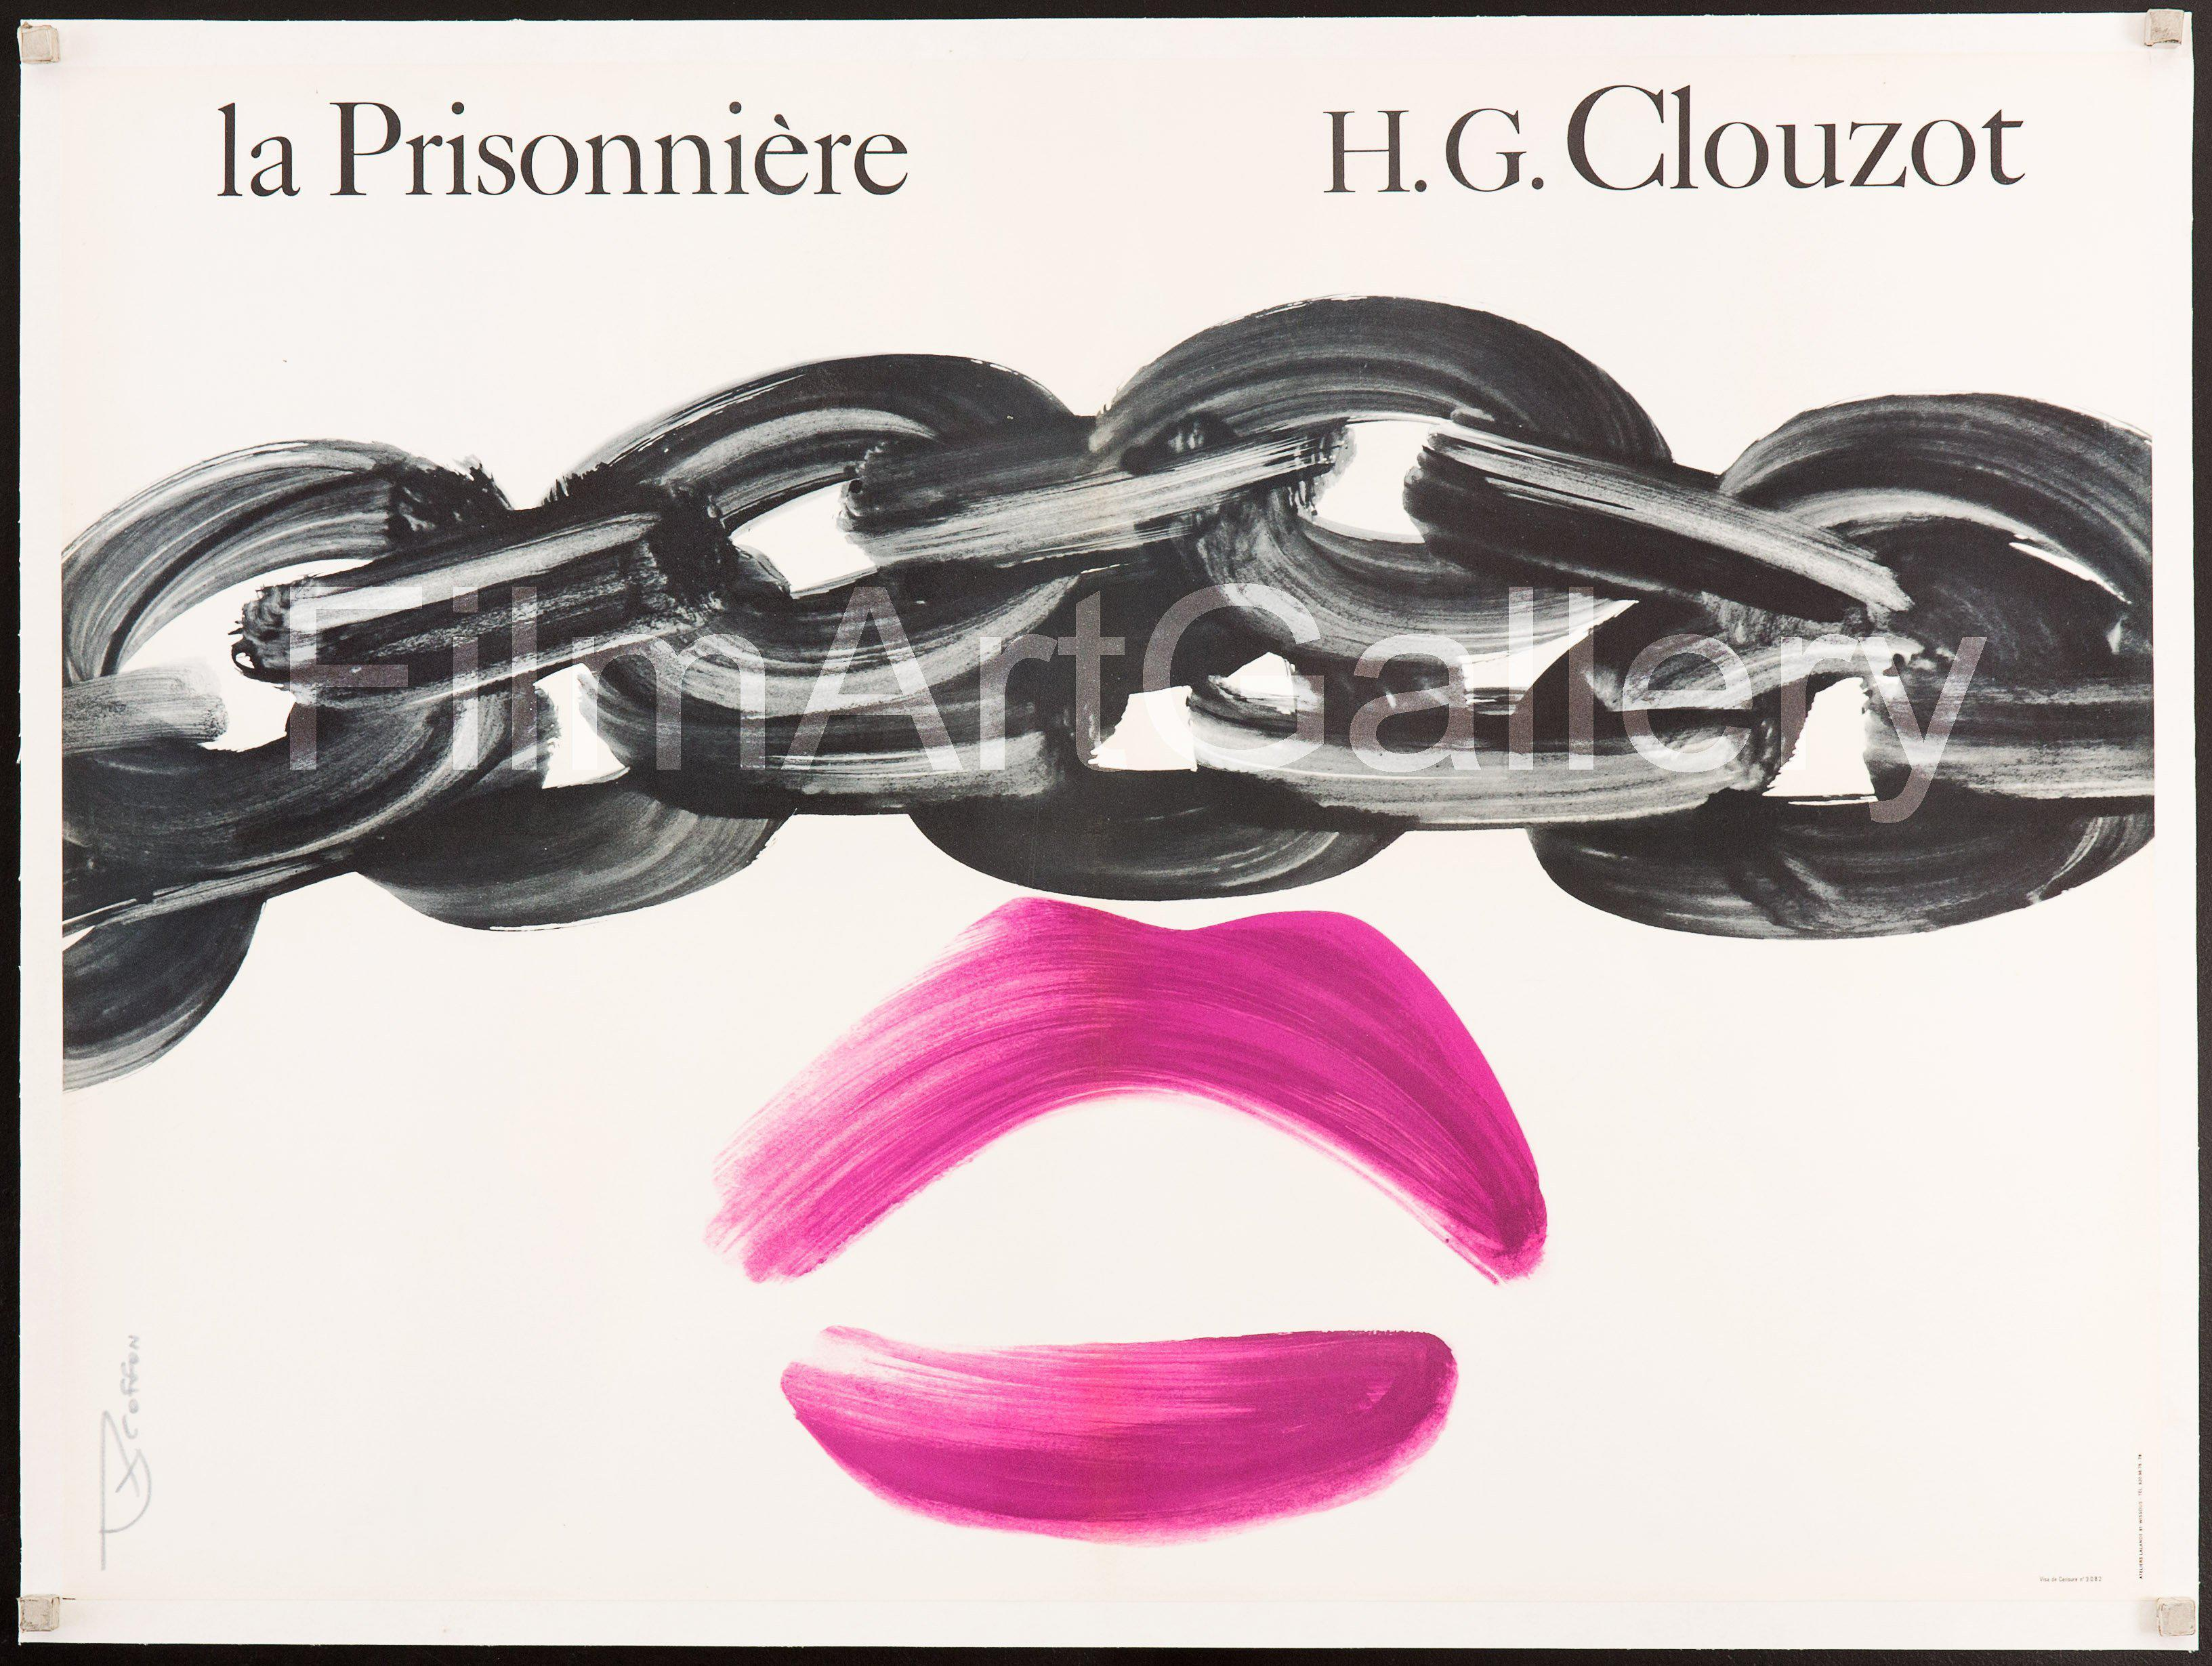 Woman In Chains (La Prisonniere) French small (23x32) Original Vintage Movie Poster